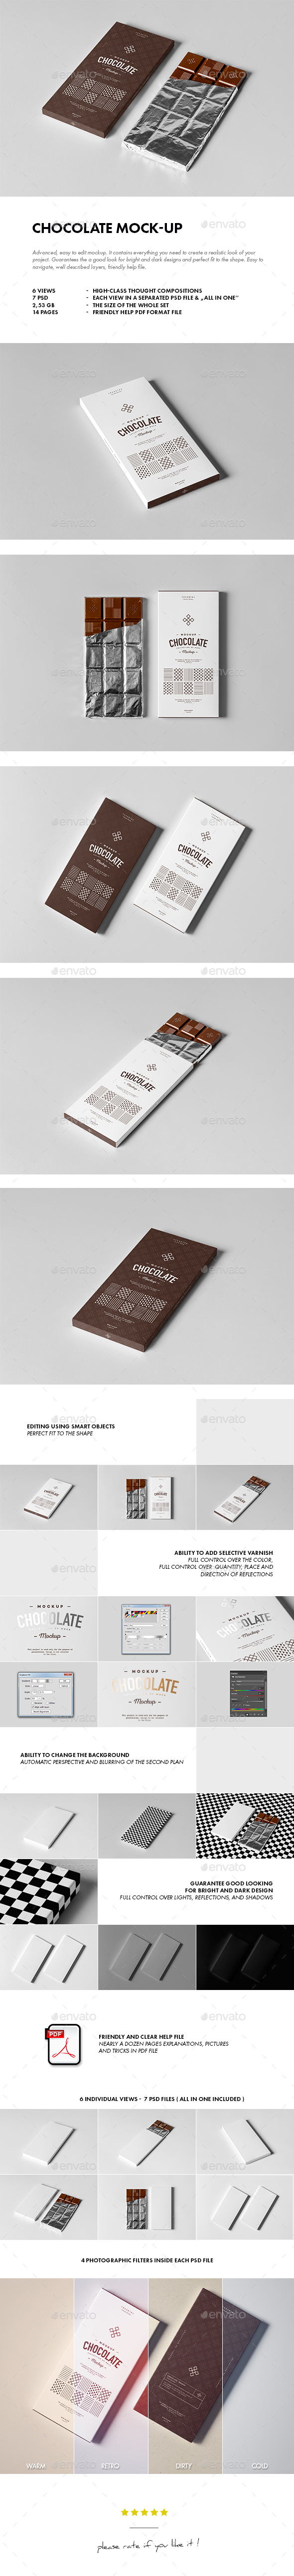 Chocolate Mock-up - Food and Drink Packaging